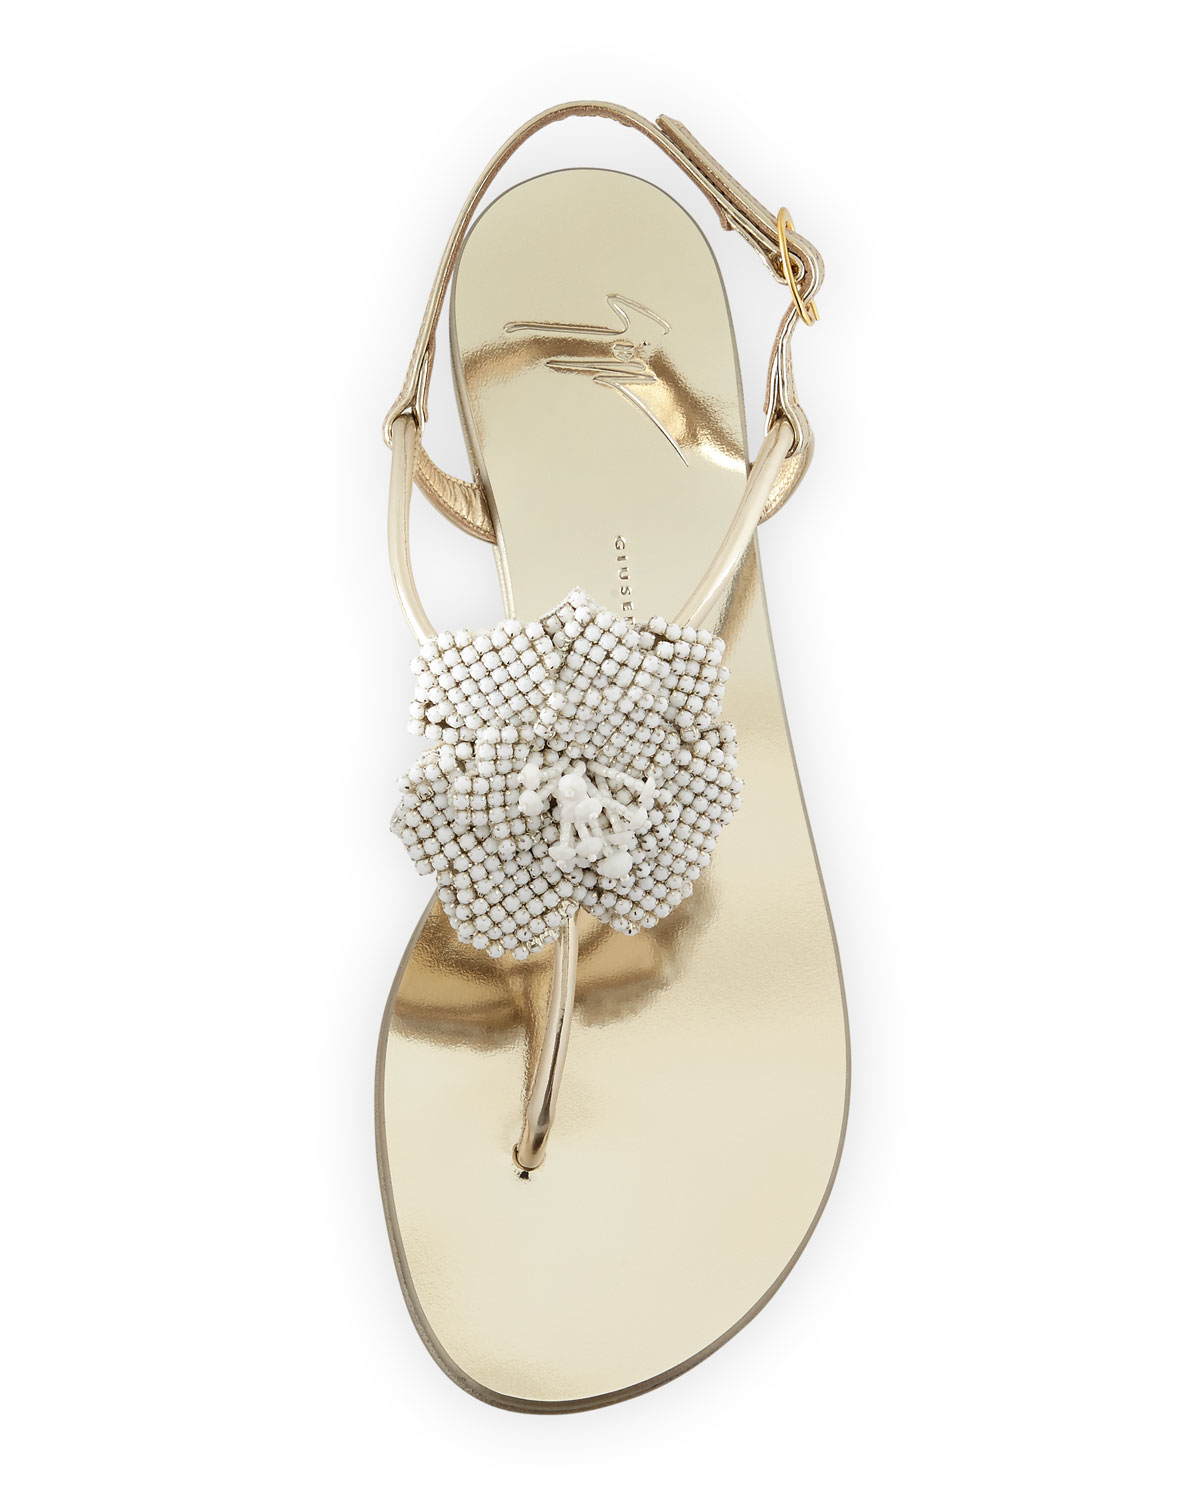 62a9f64a1db44 coupon code for giuseppe zanotti flat sandals 2c865 260c1